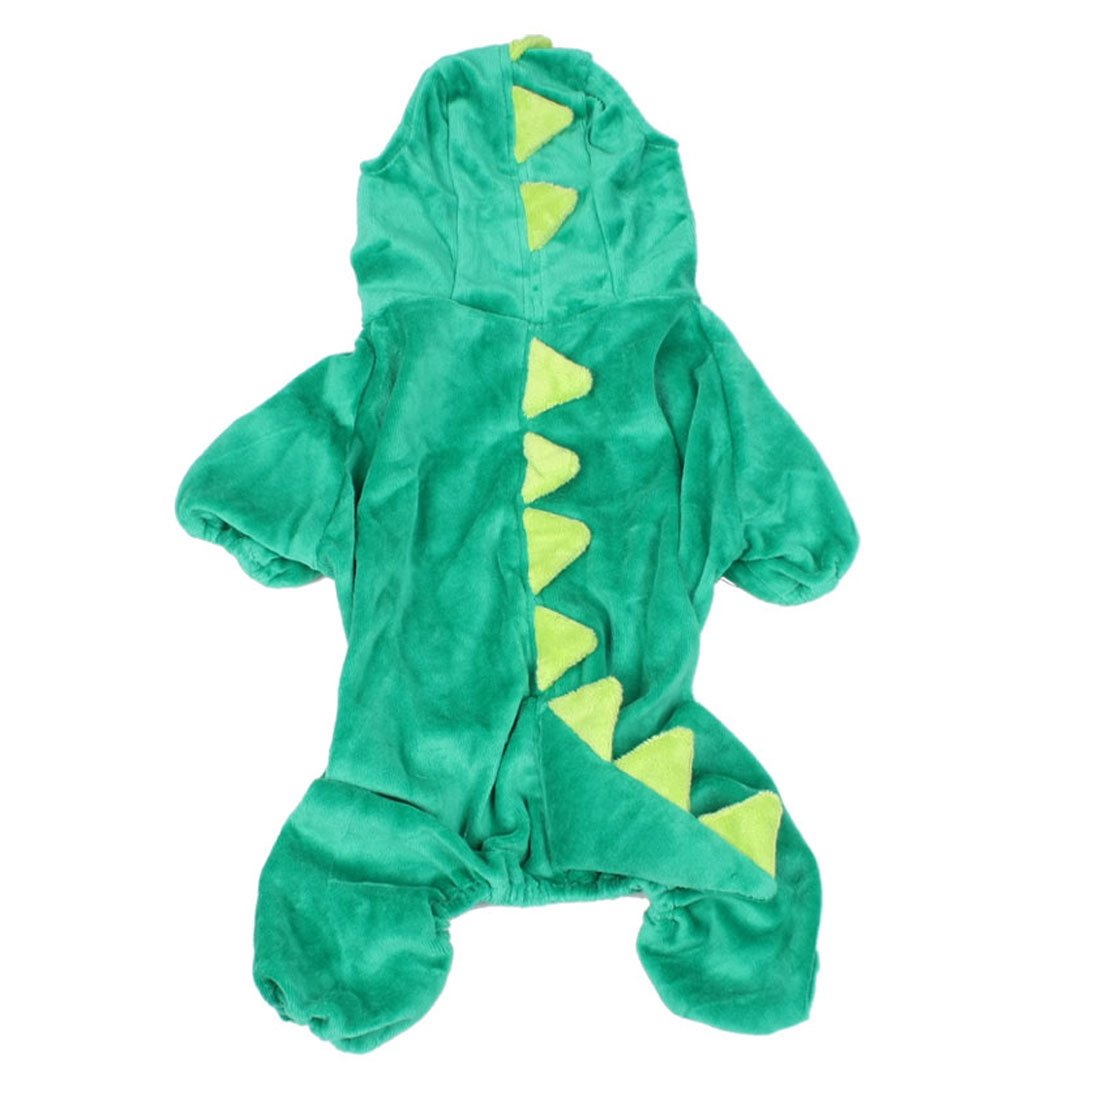 Christmas Festive Costume Plush Dinosaur Design Pet Dog Jumpsuit Apparel Green LL